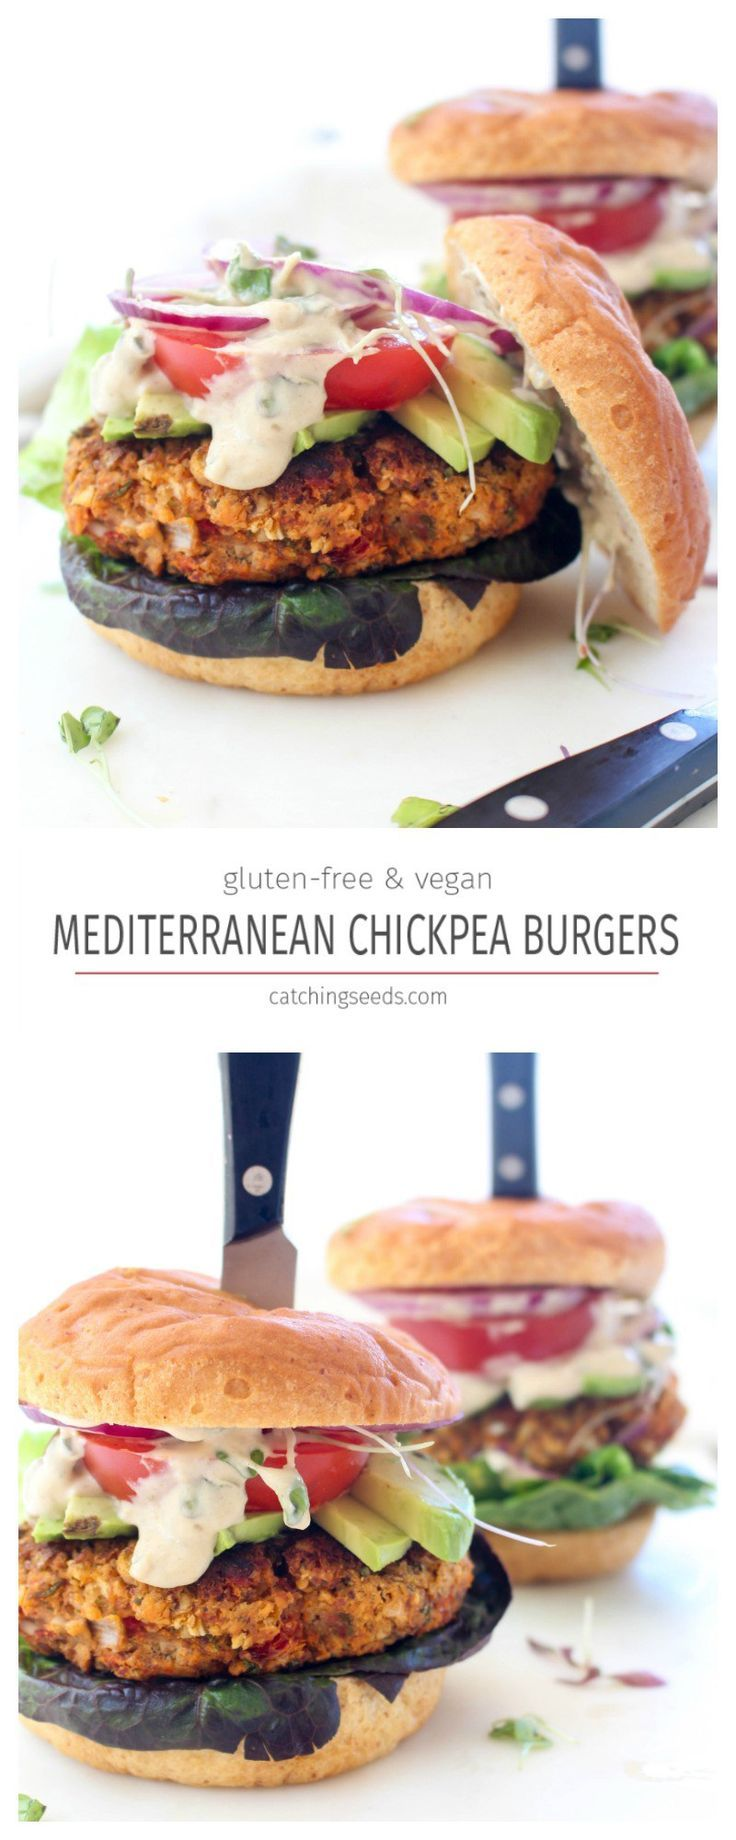 A juicy and healthy burger packed with your favorite Mediterranean flavors. | Vegan & Gluten free